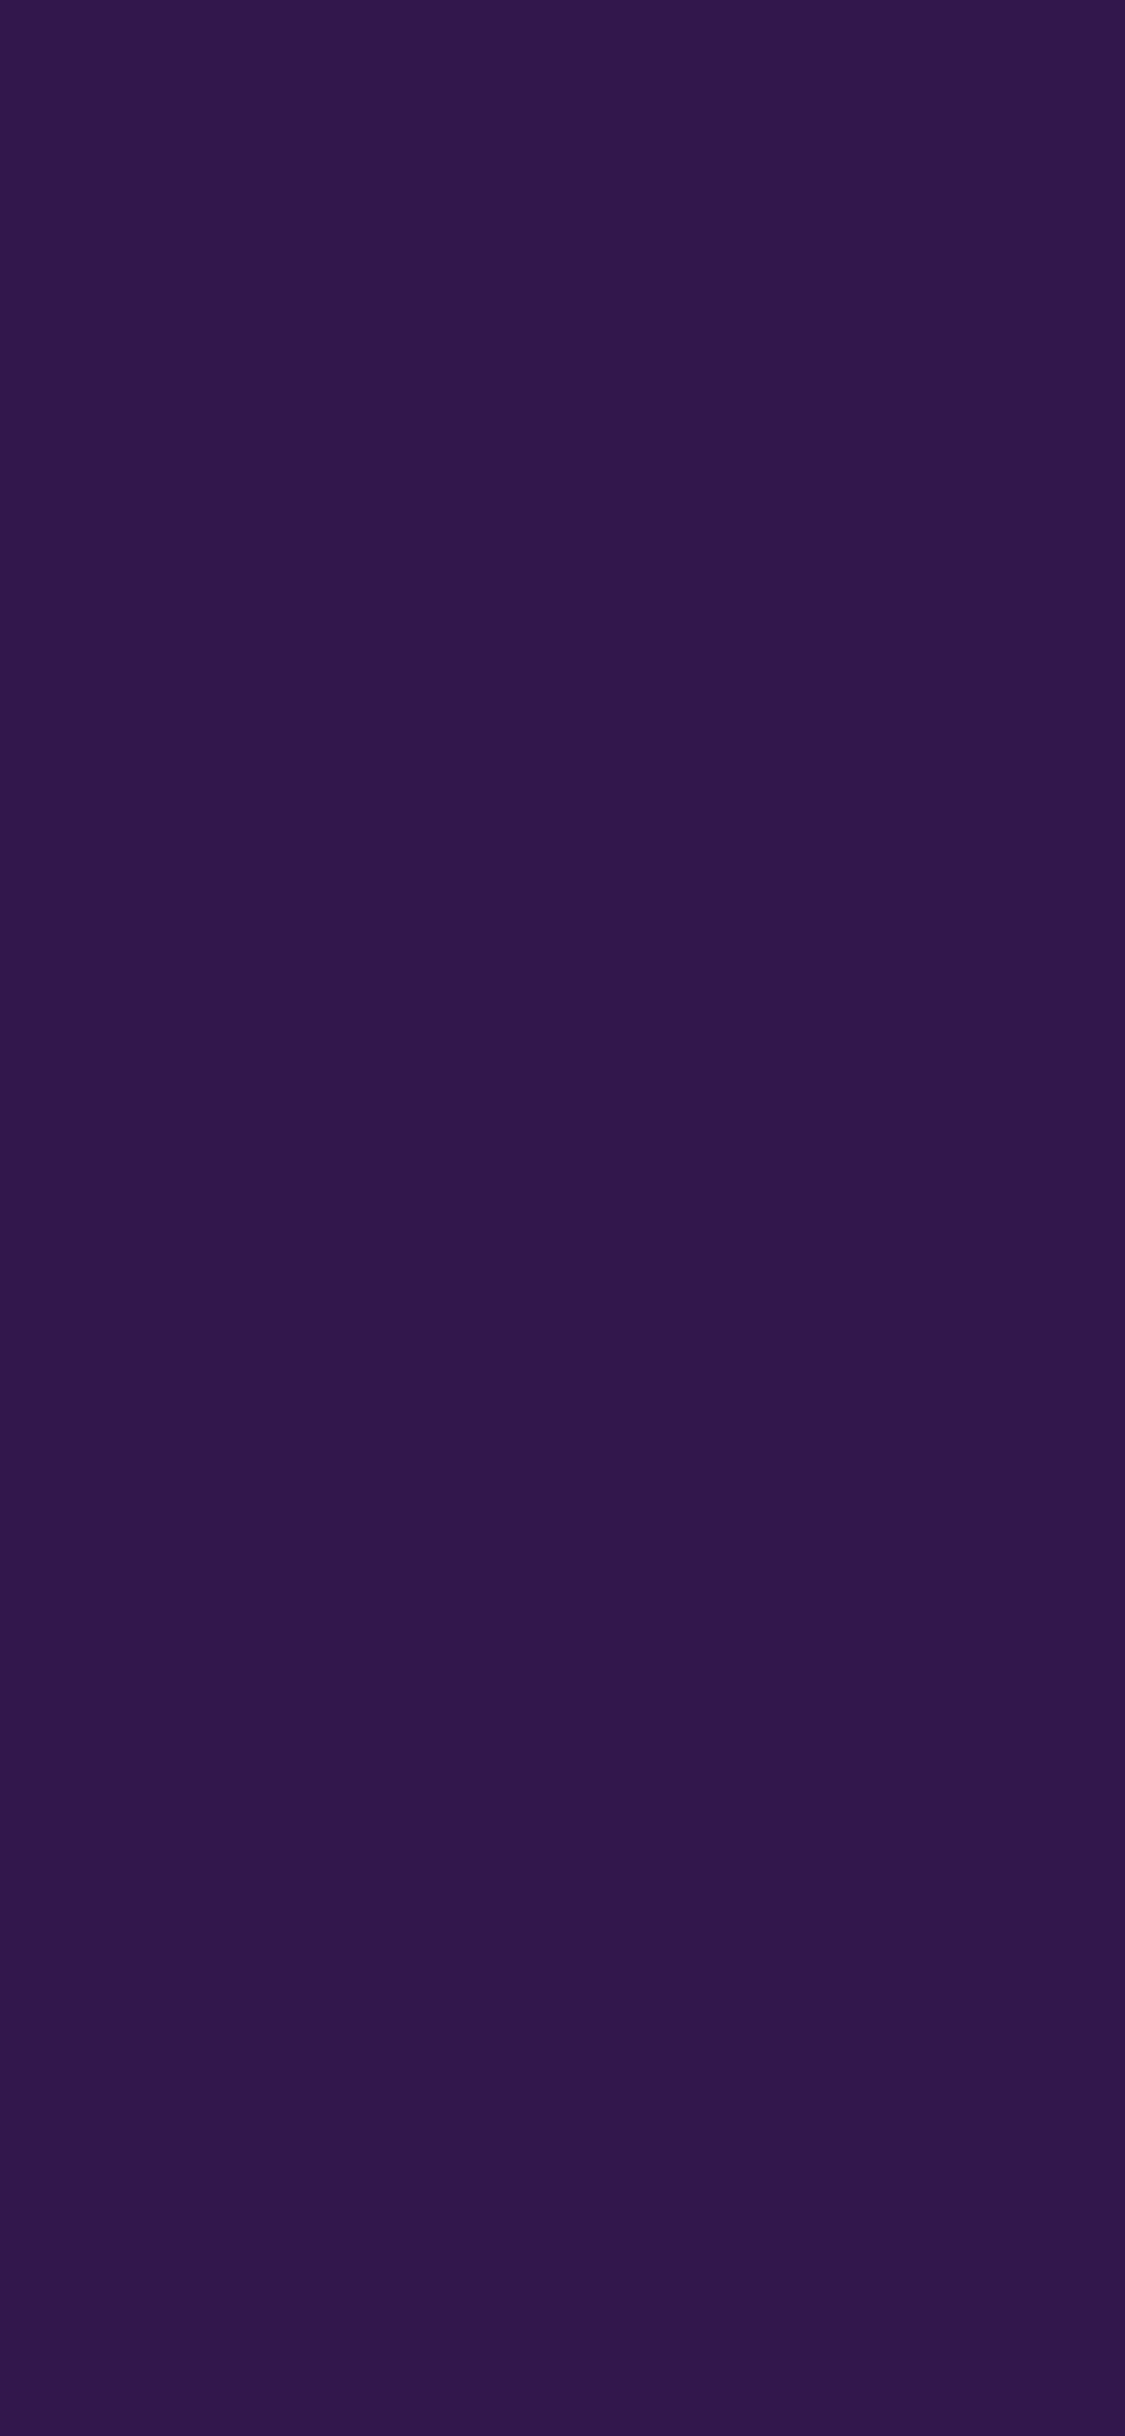 1125x2436 Russian Violet Solid Color Background